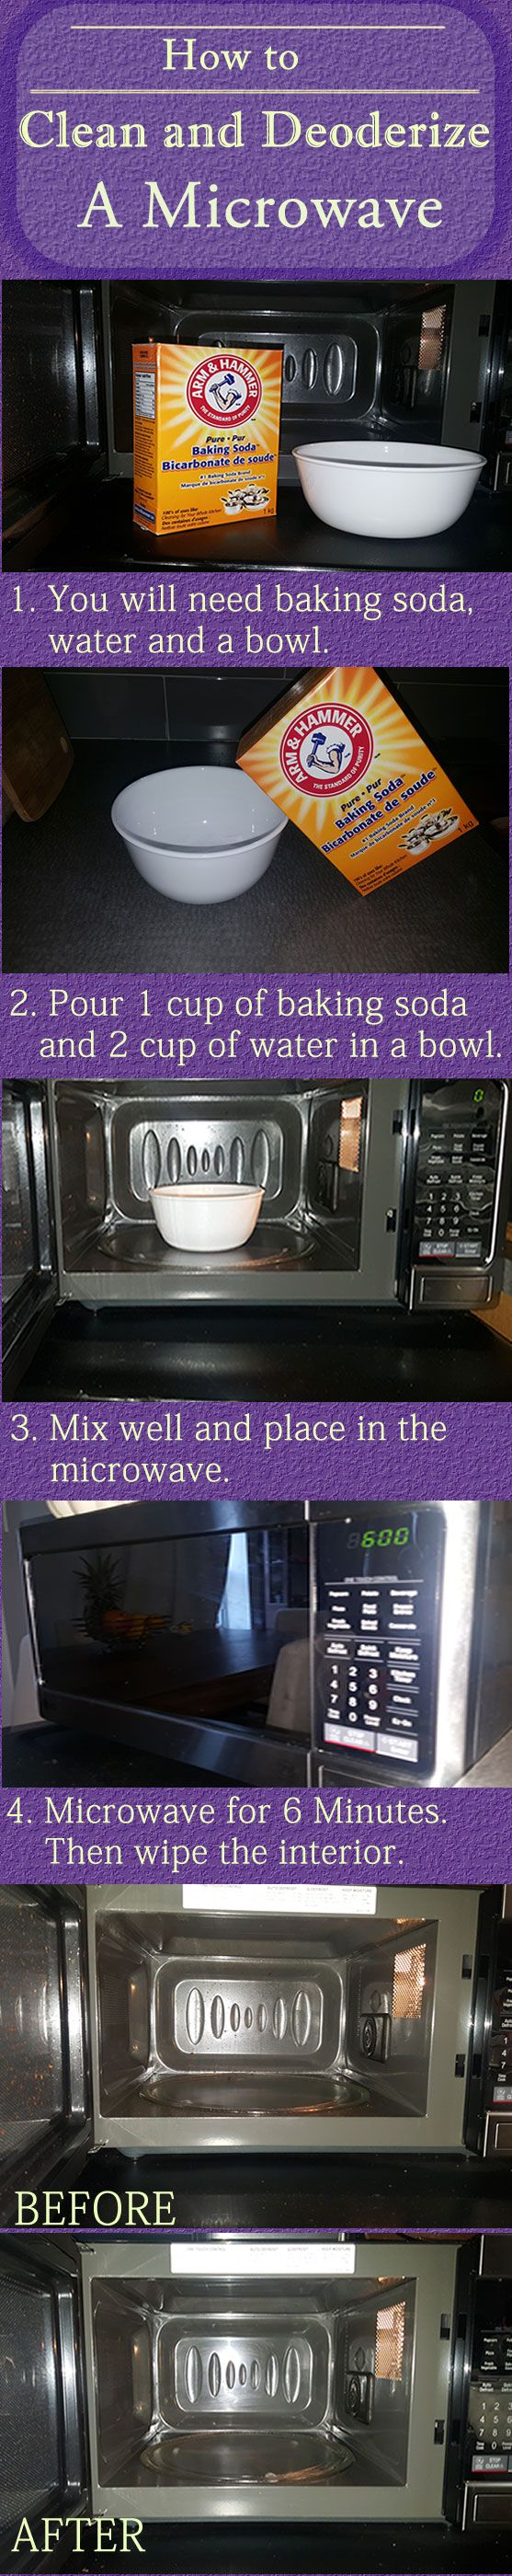 How To Clean And Deodorize A Microwave 1 You Will Need Baking Soda Water